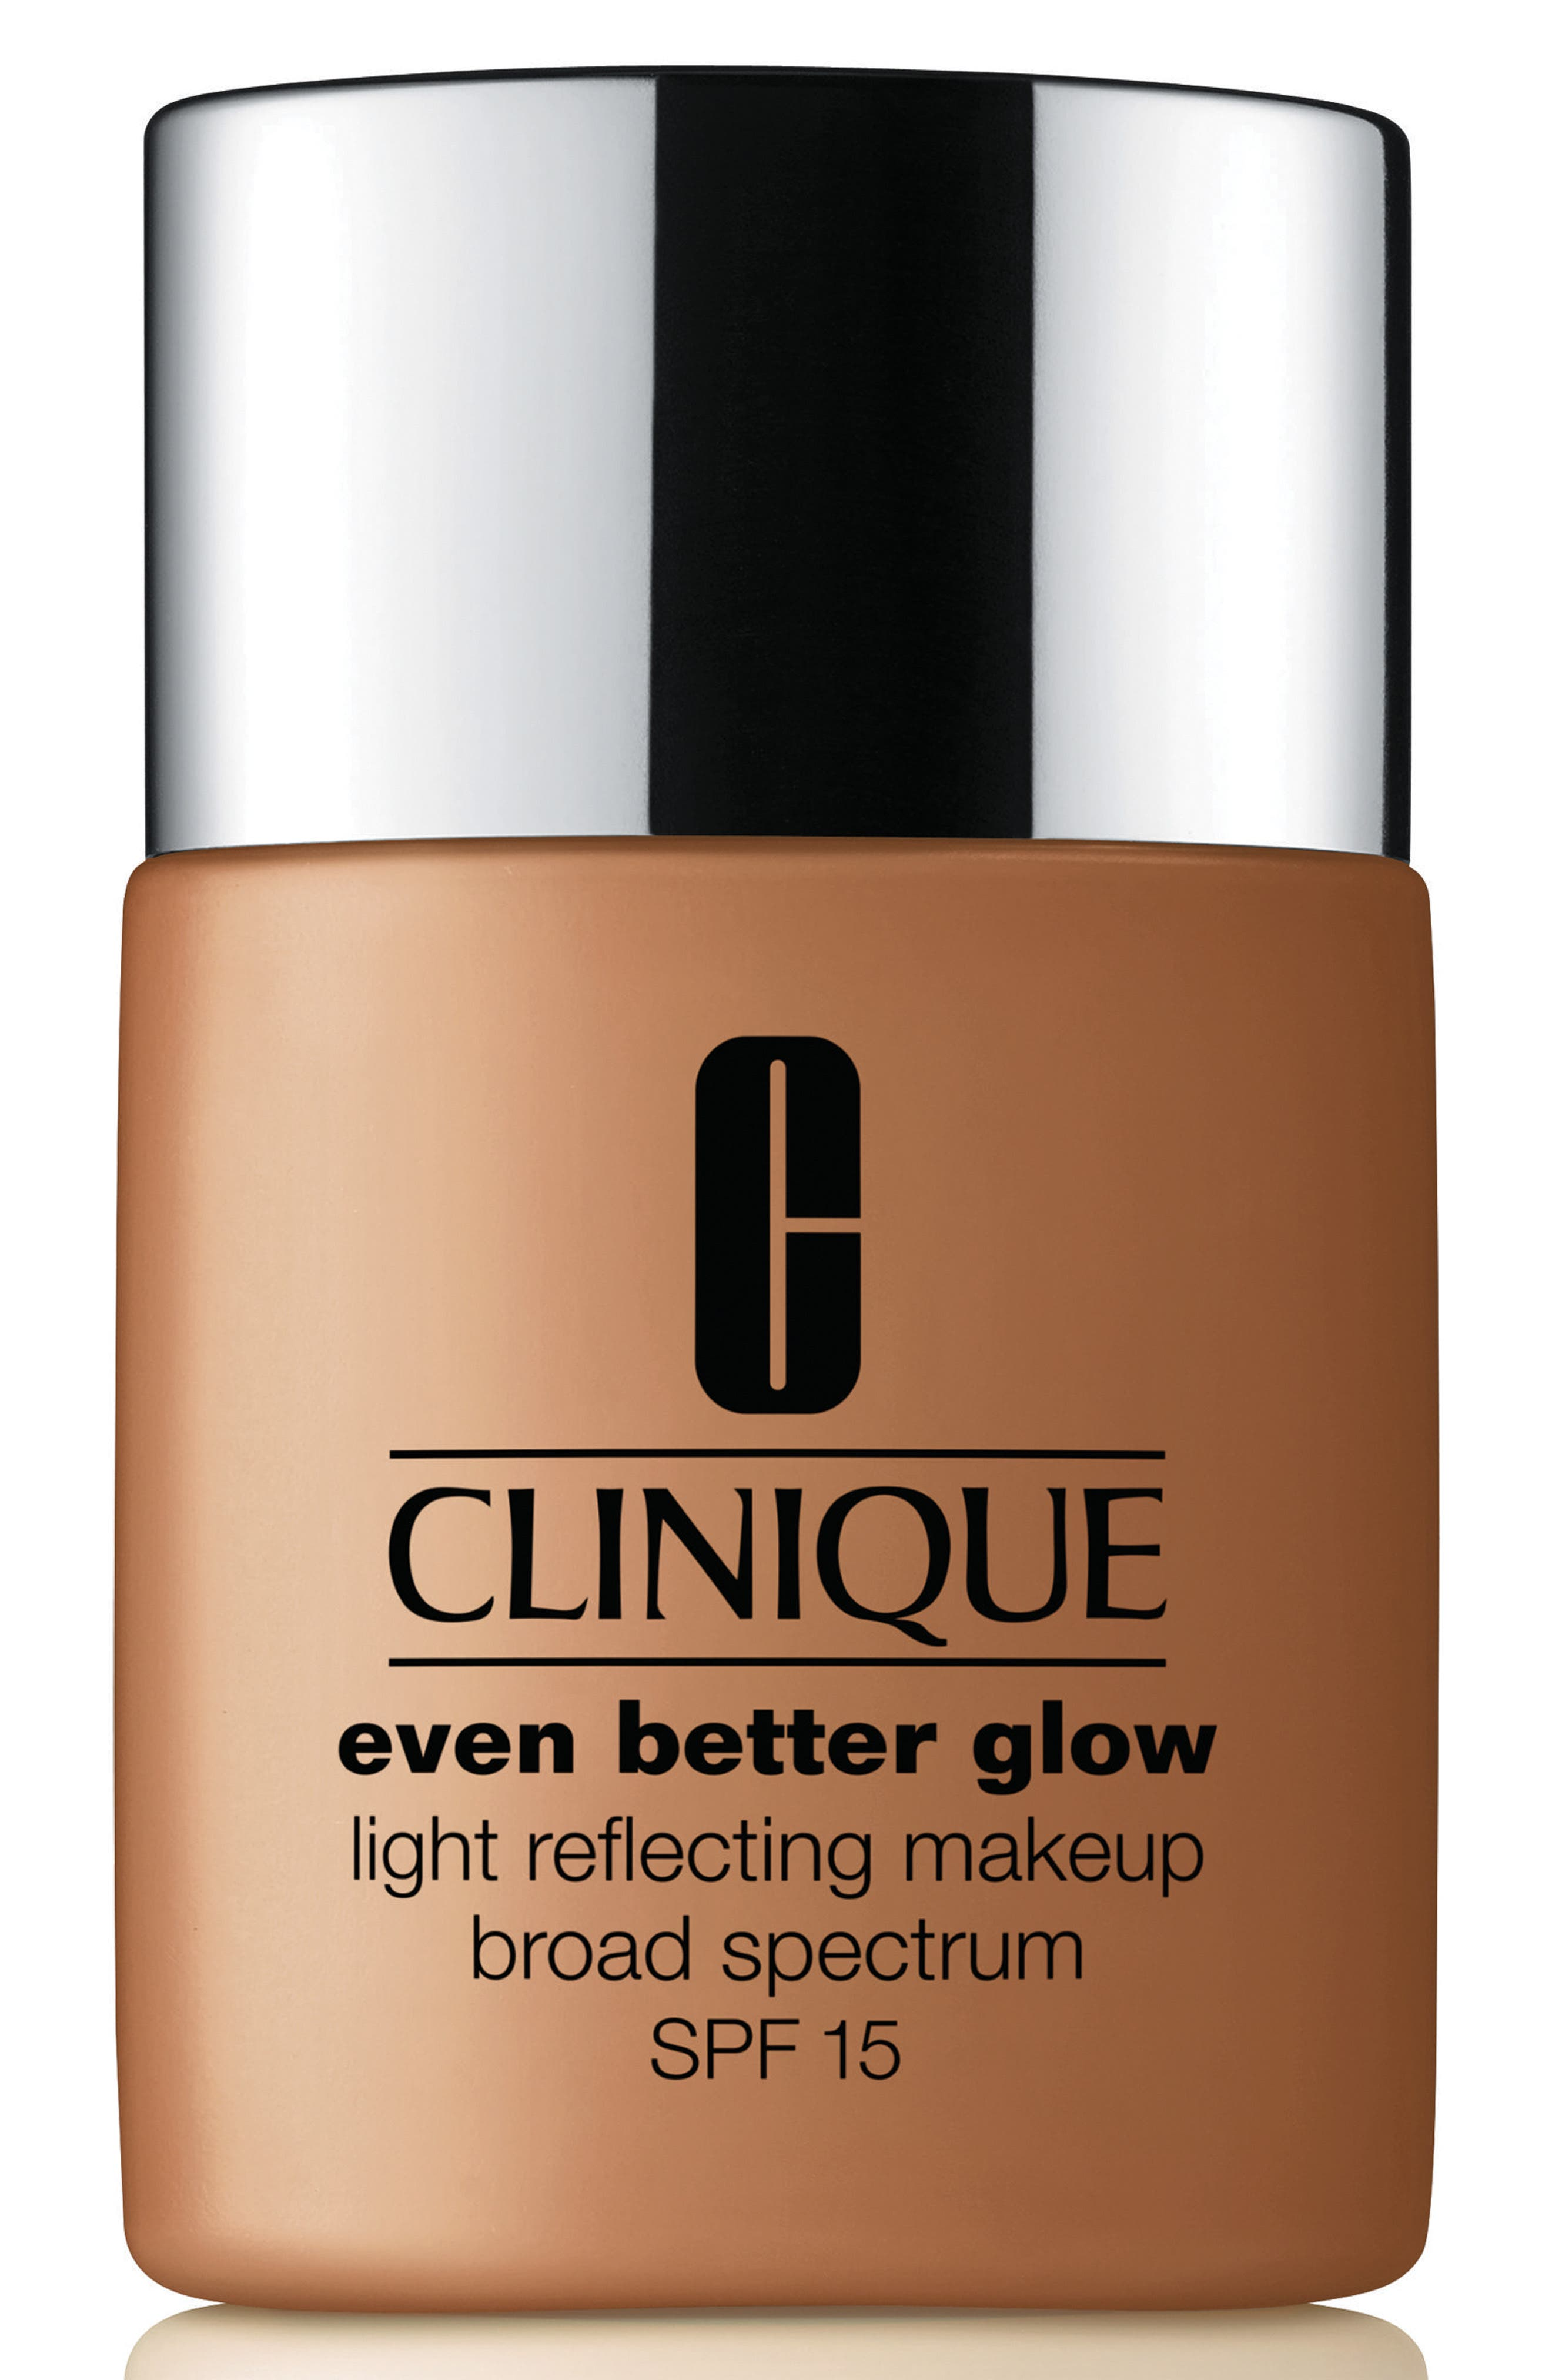 Even Better Glow Light Reflecting Makeup Broad Spectrum SPF 15,                             Main thumbnail 1, color,                             118 AMBER